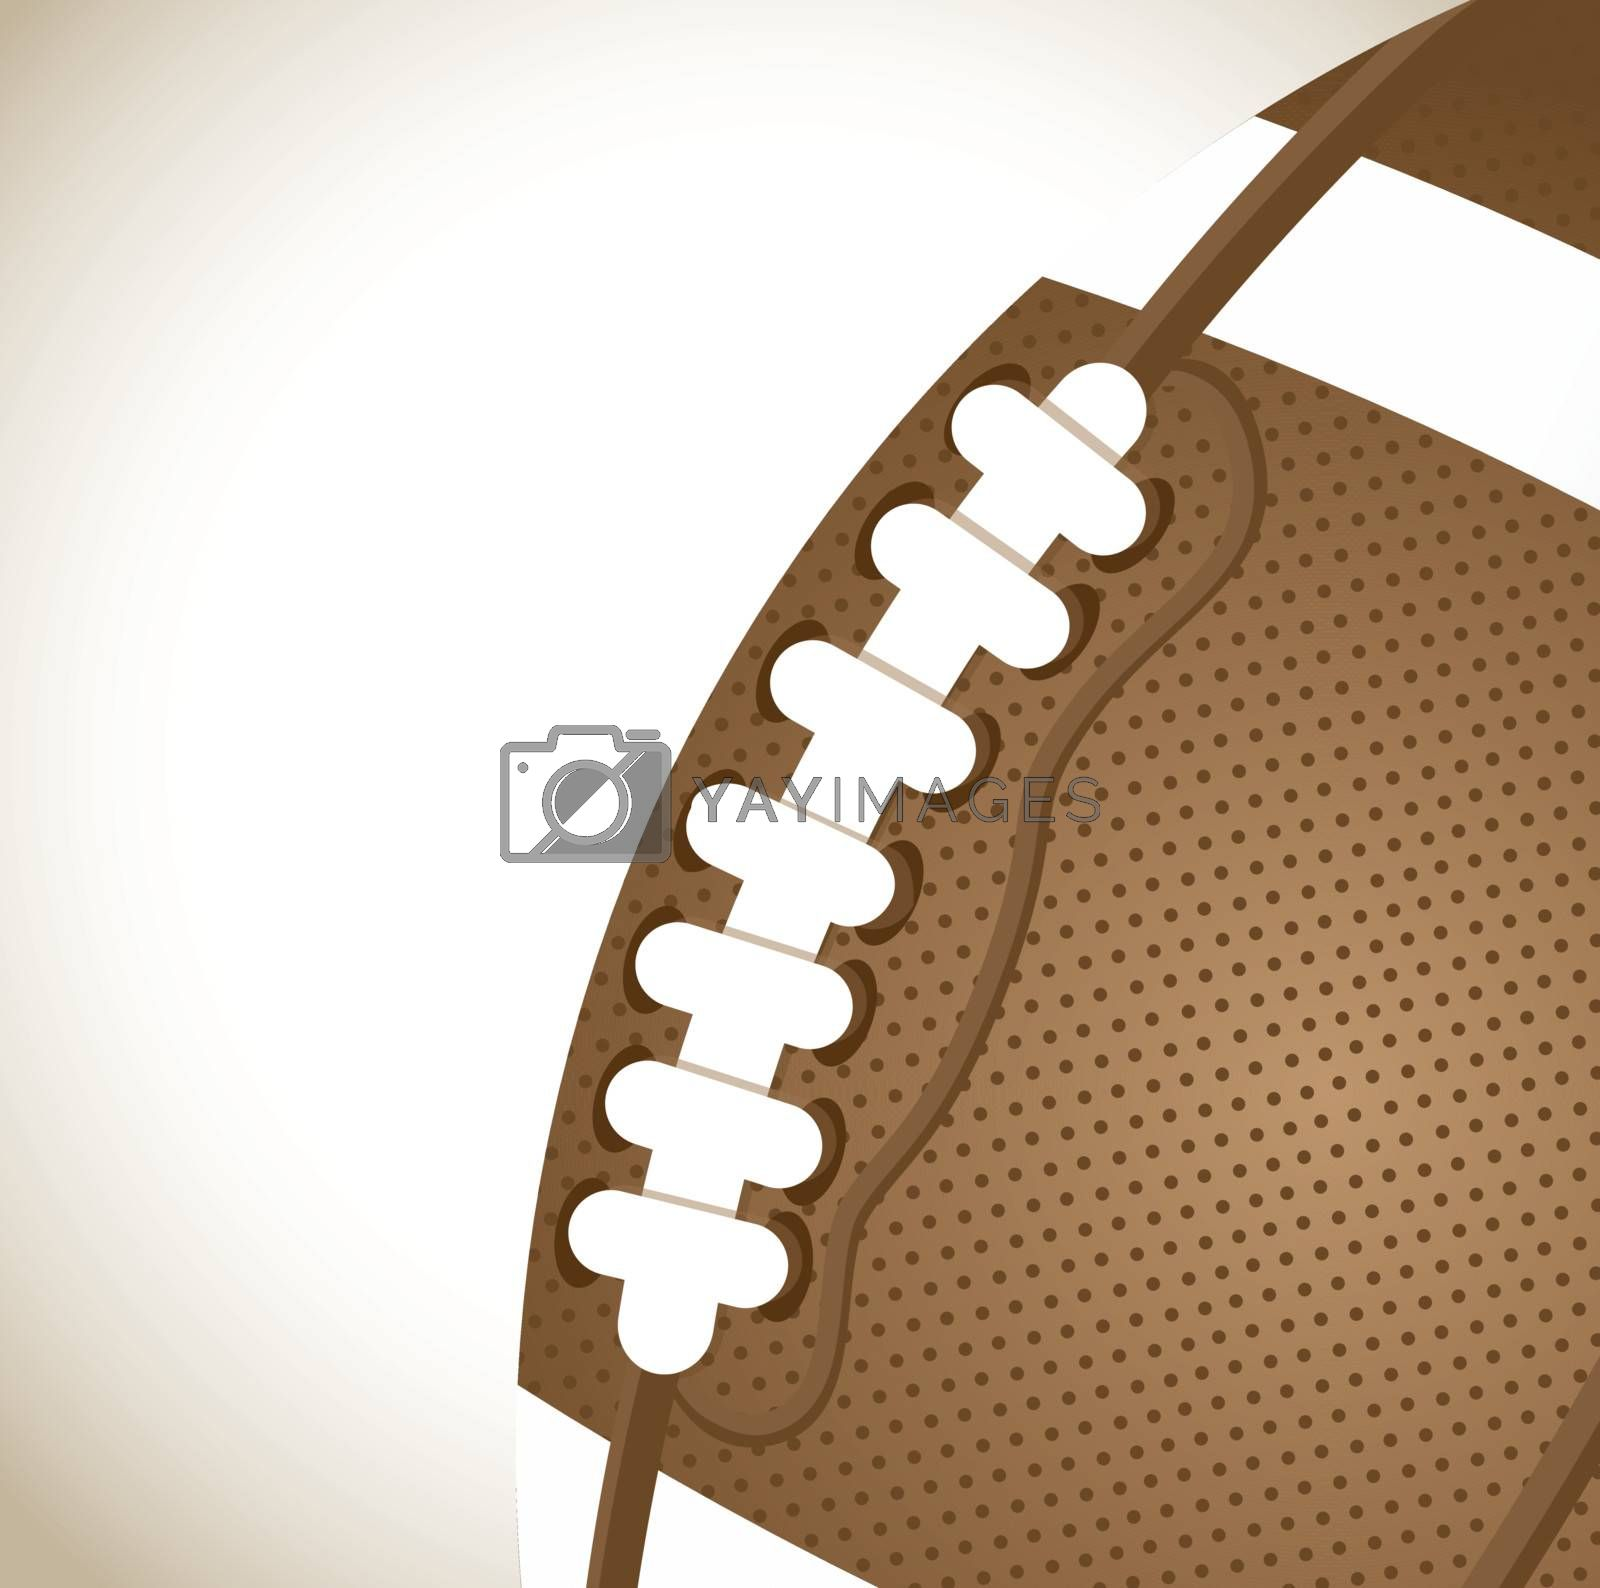 big and vintage ball of Football over brown background